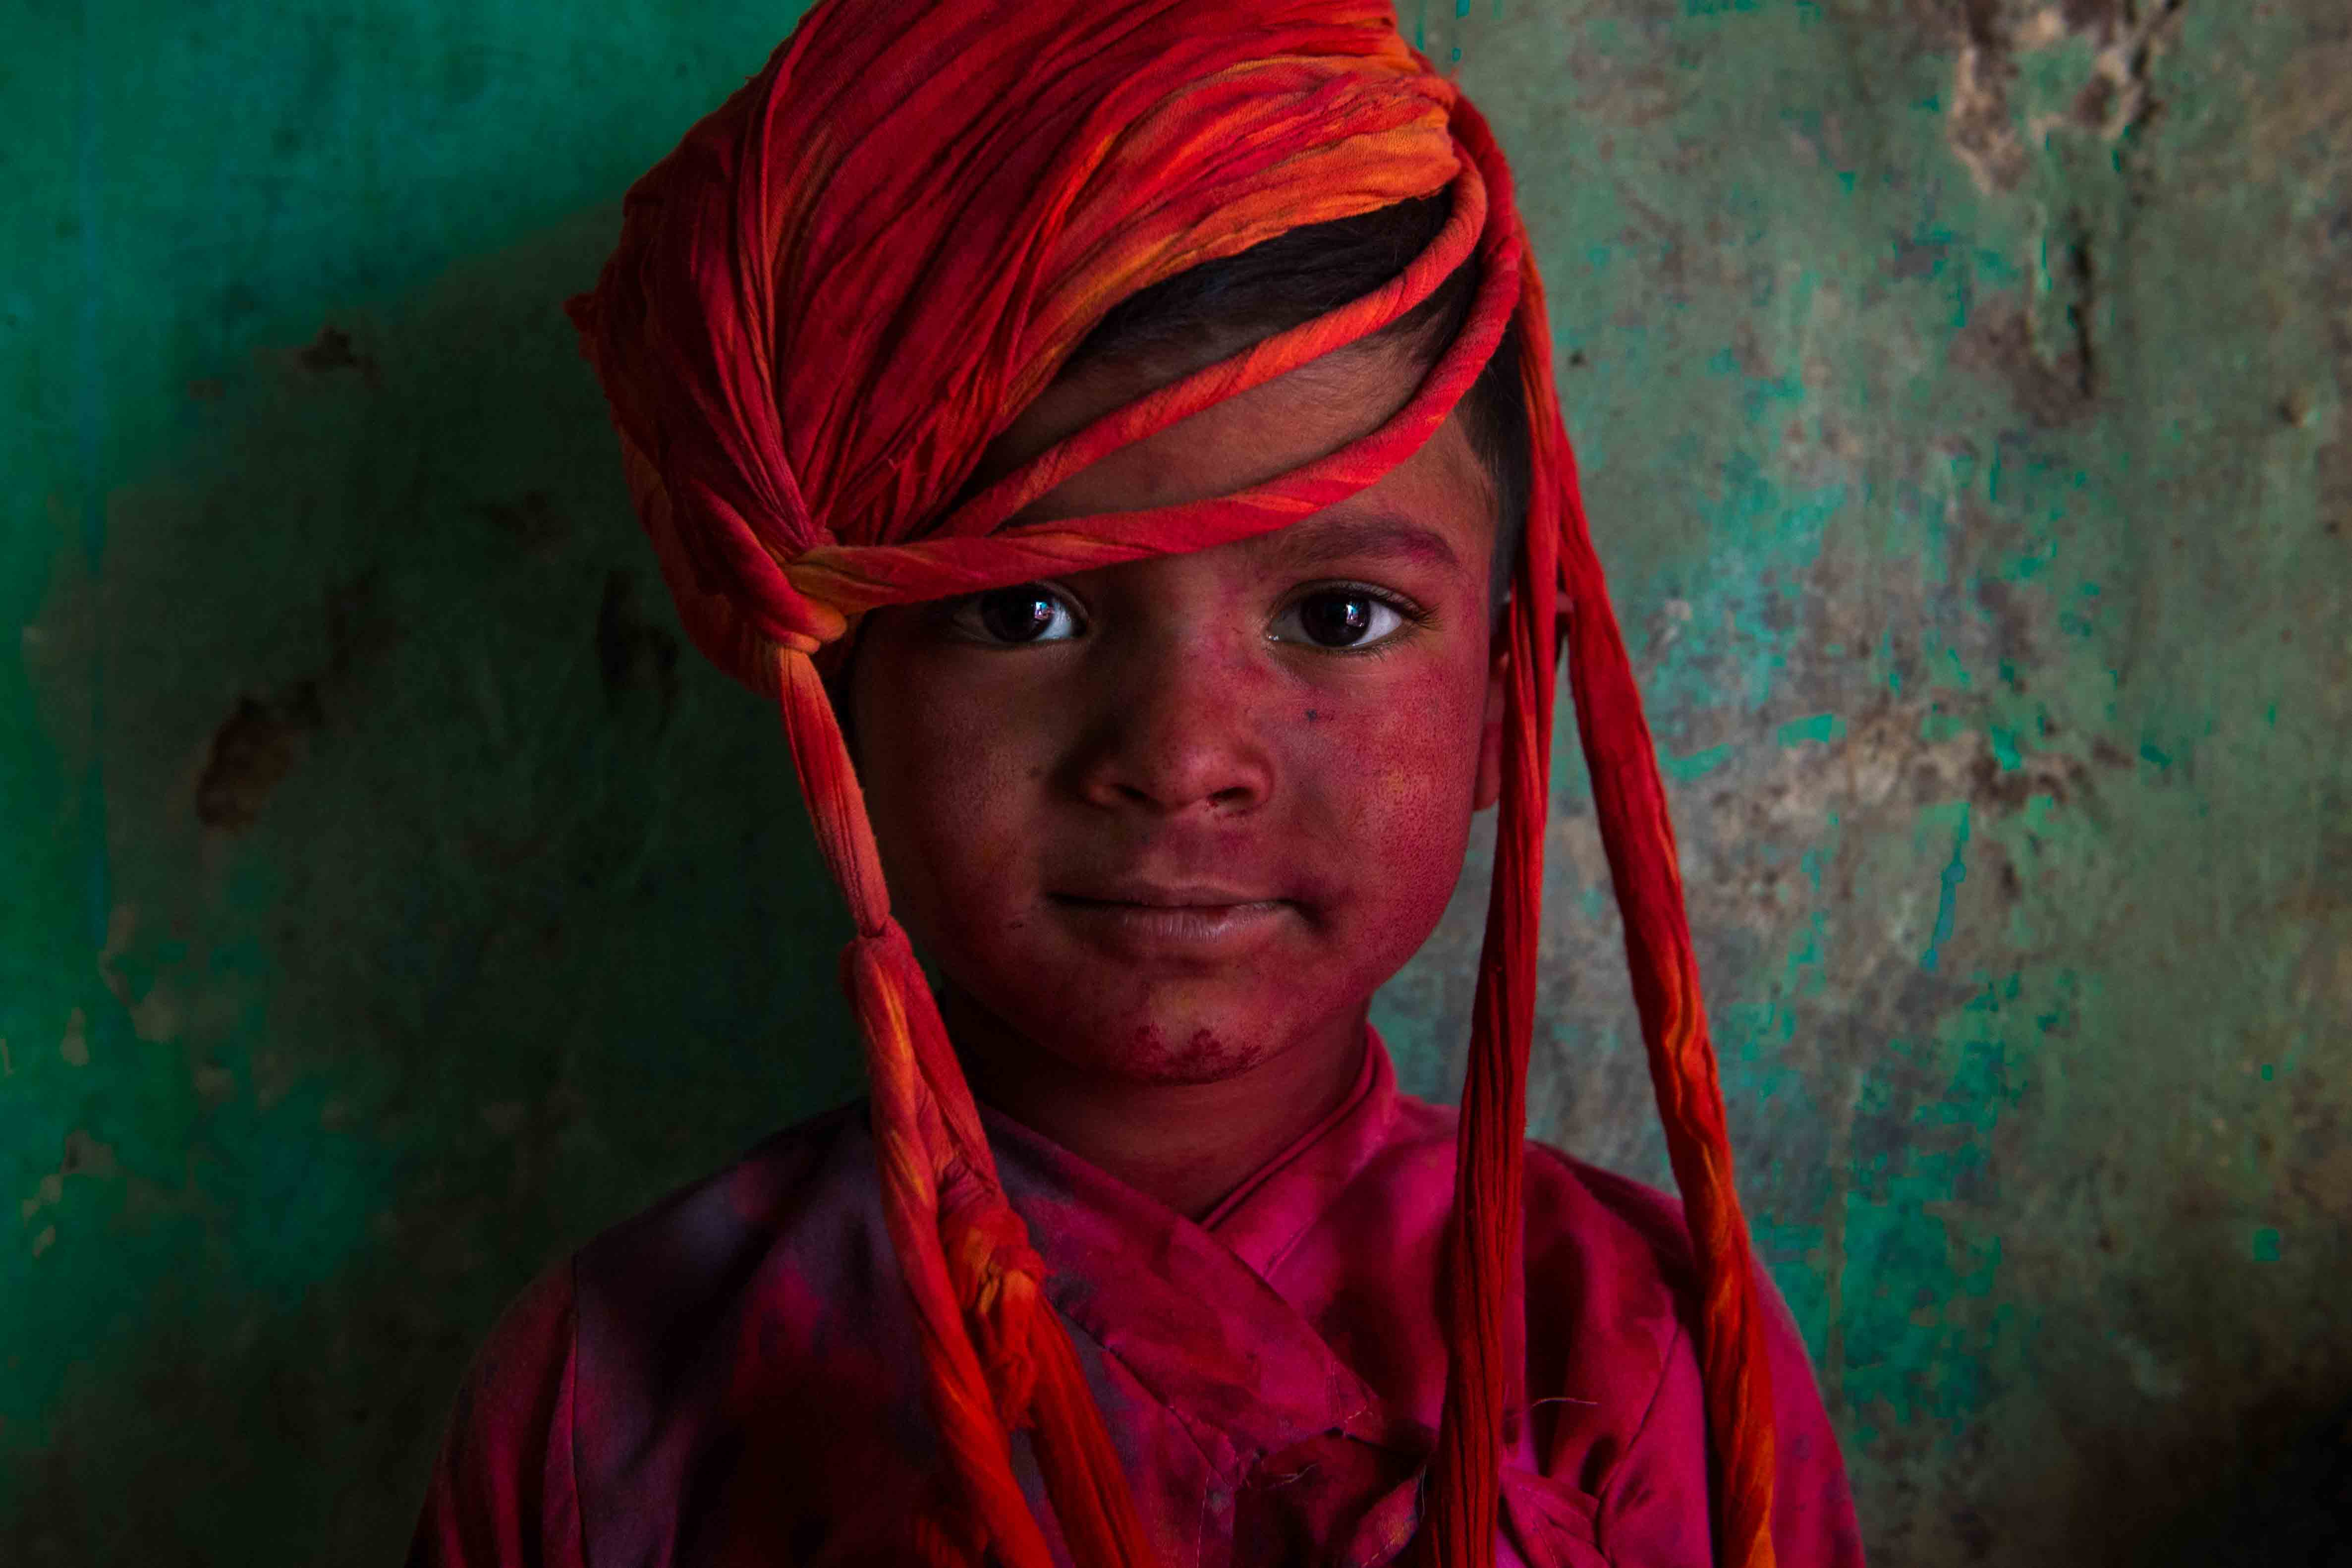 Subodh Shetty: Inspiring and Gorgeous Colorful Portraits of People in India